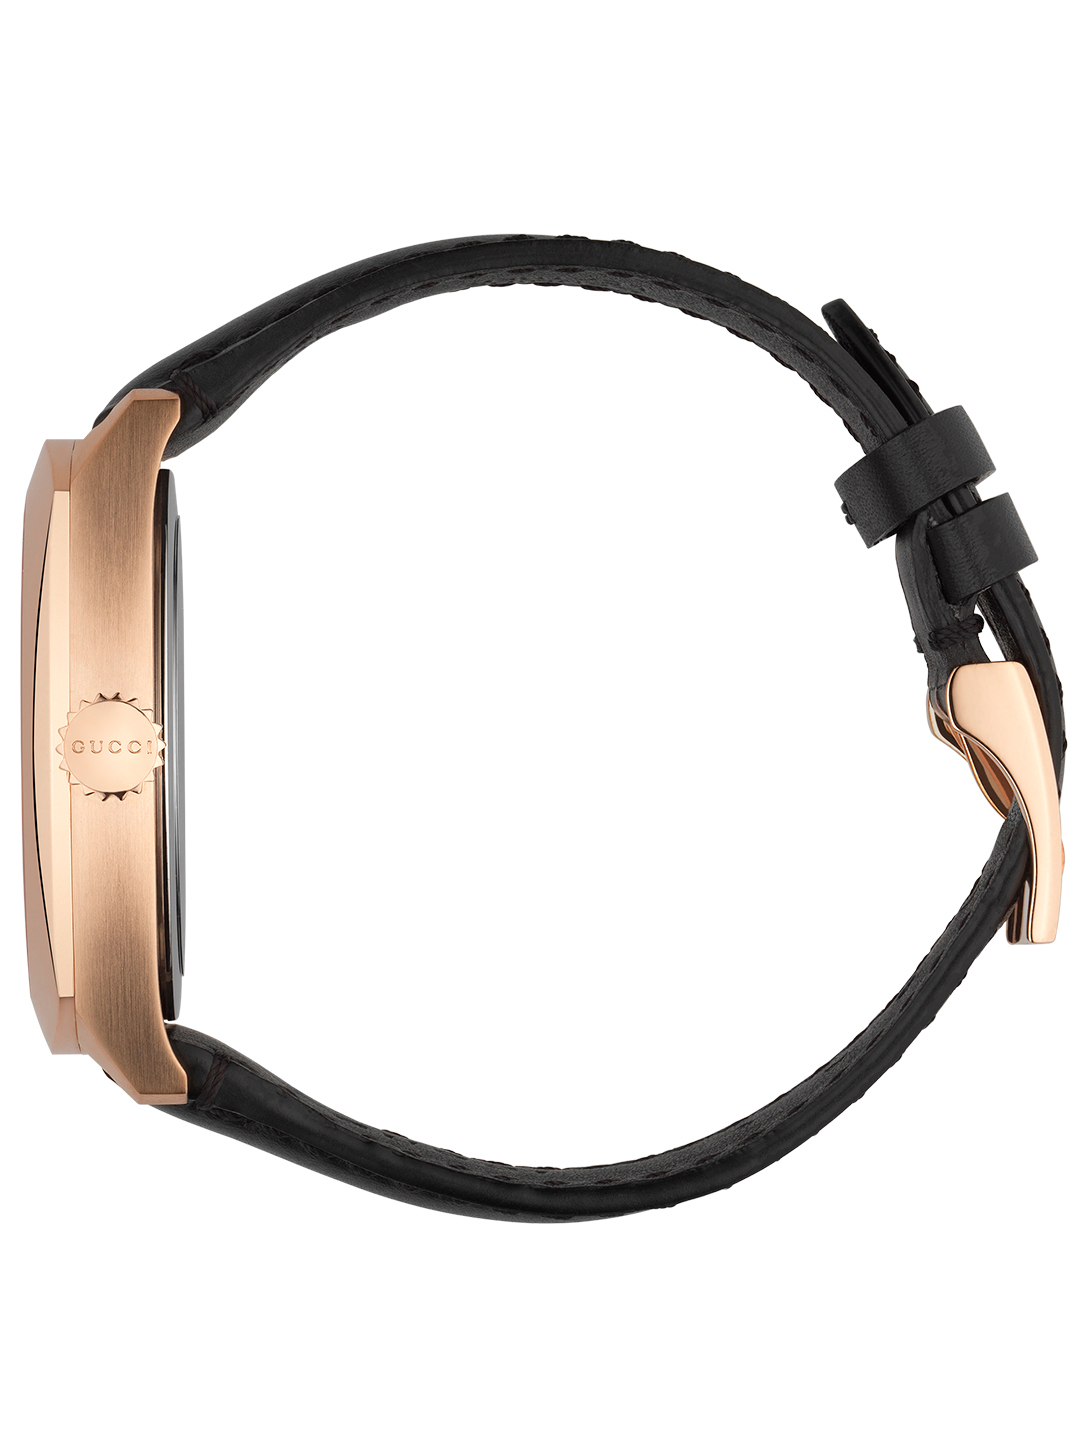 GUCCI Rose Goldtone Leather Strap Watch Women's Metallic